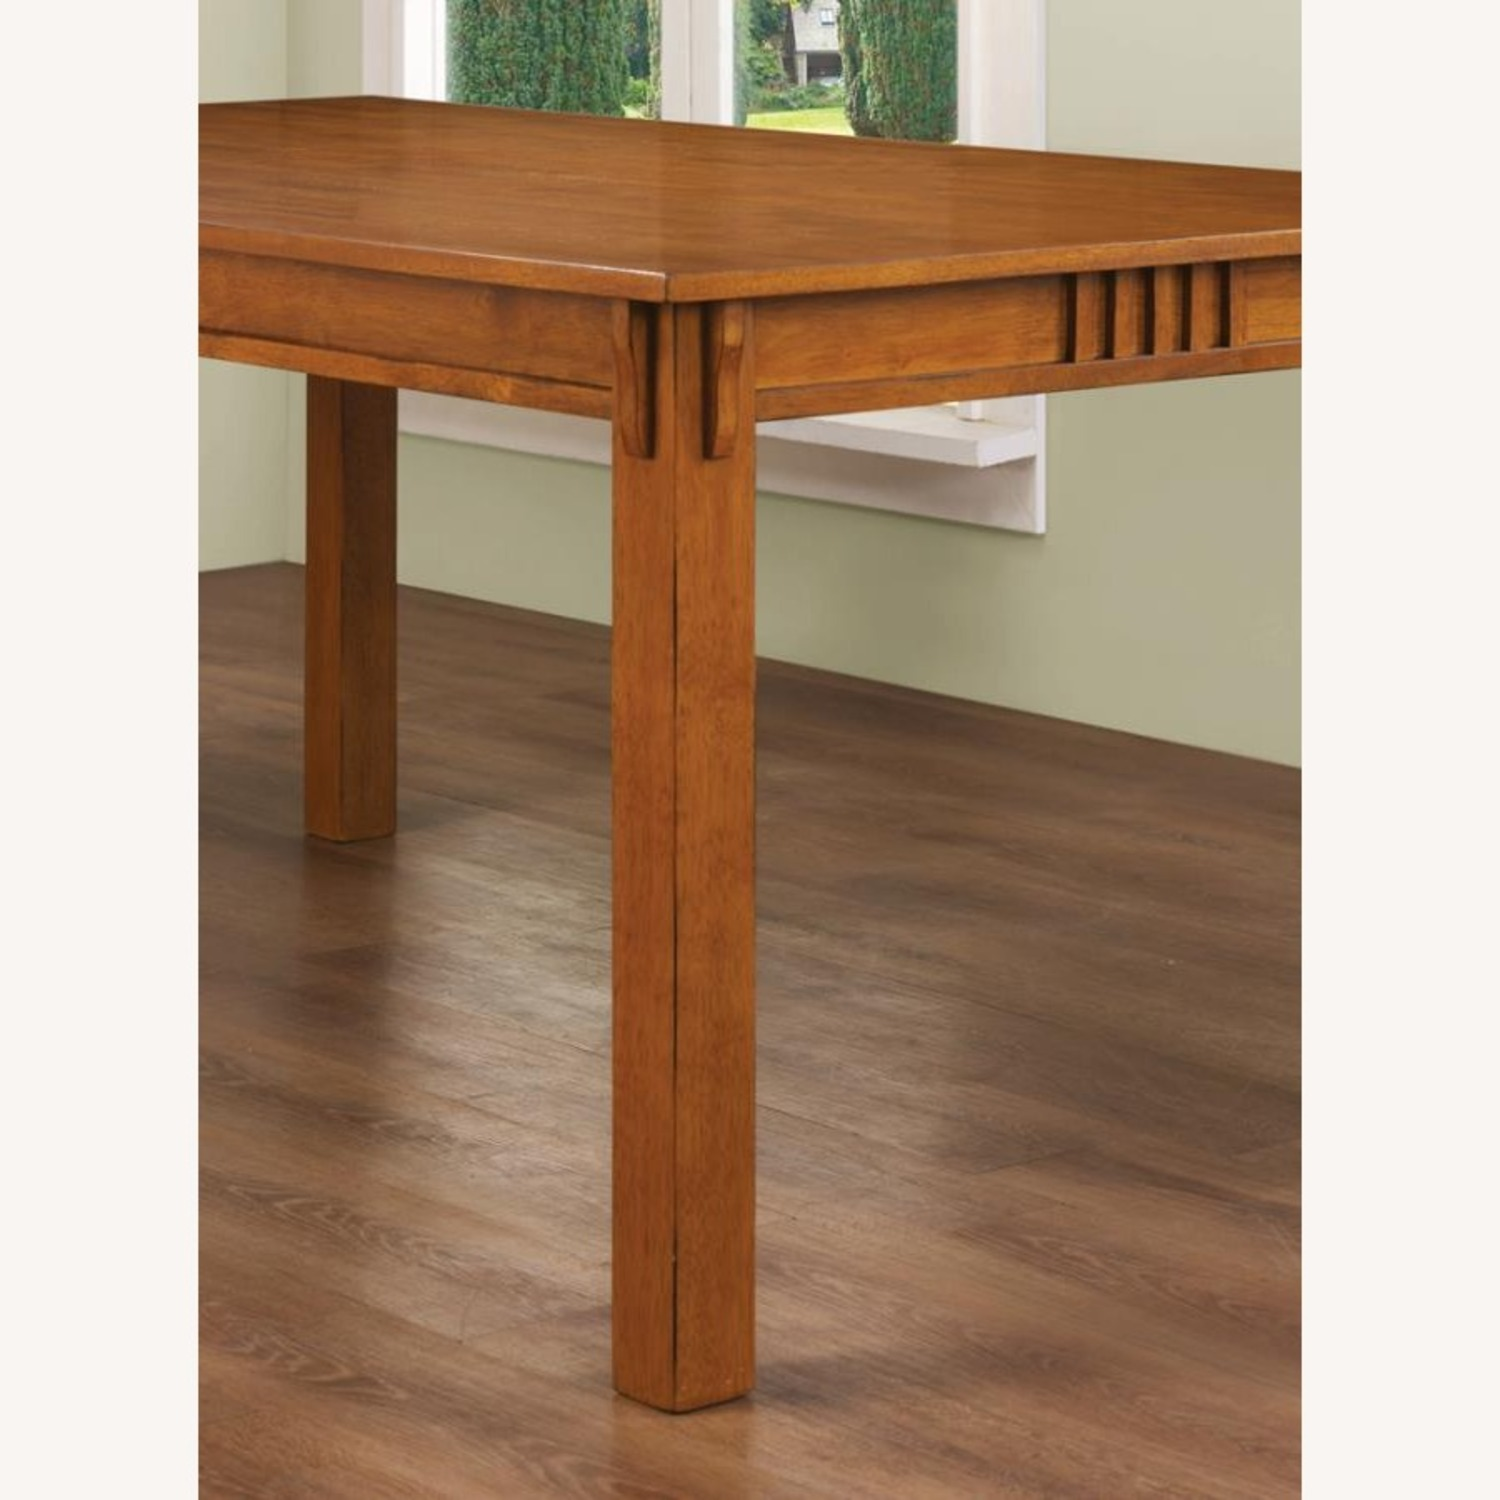 Dining Table In Hardwood Sienna Brown Finish - image-3